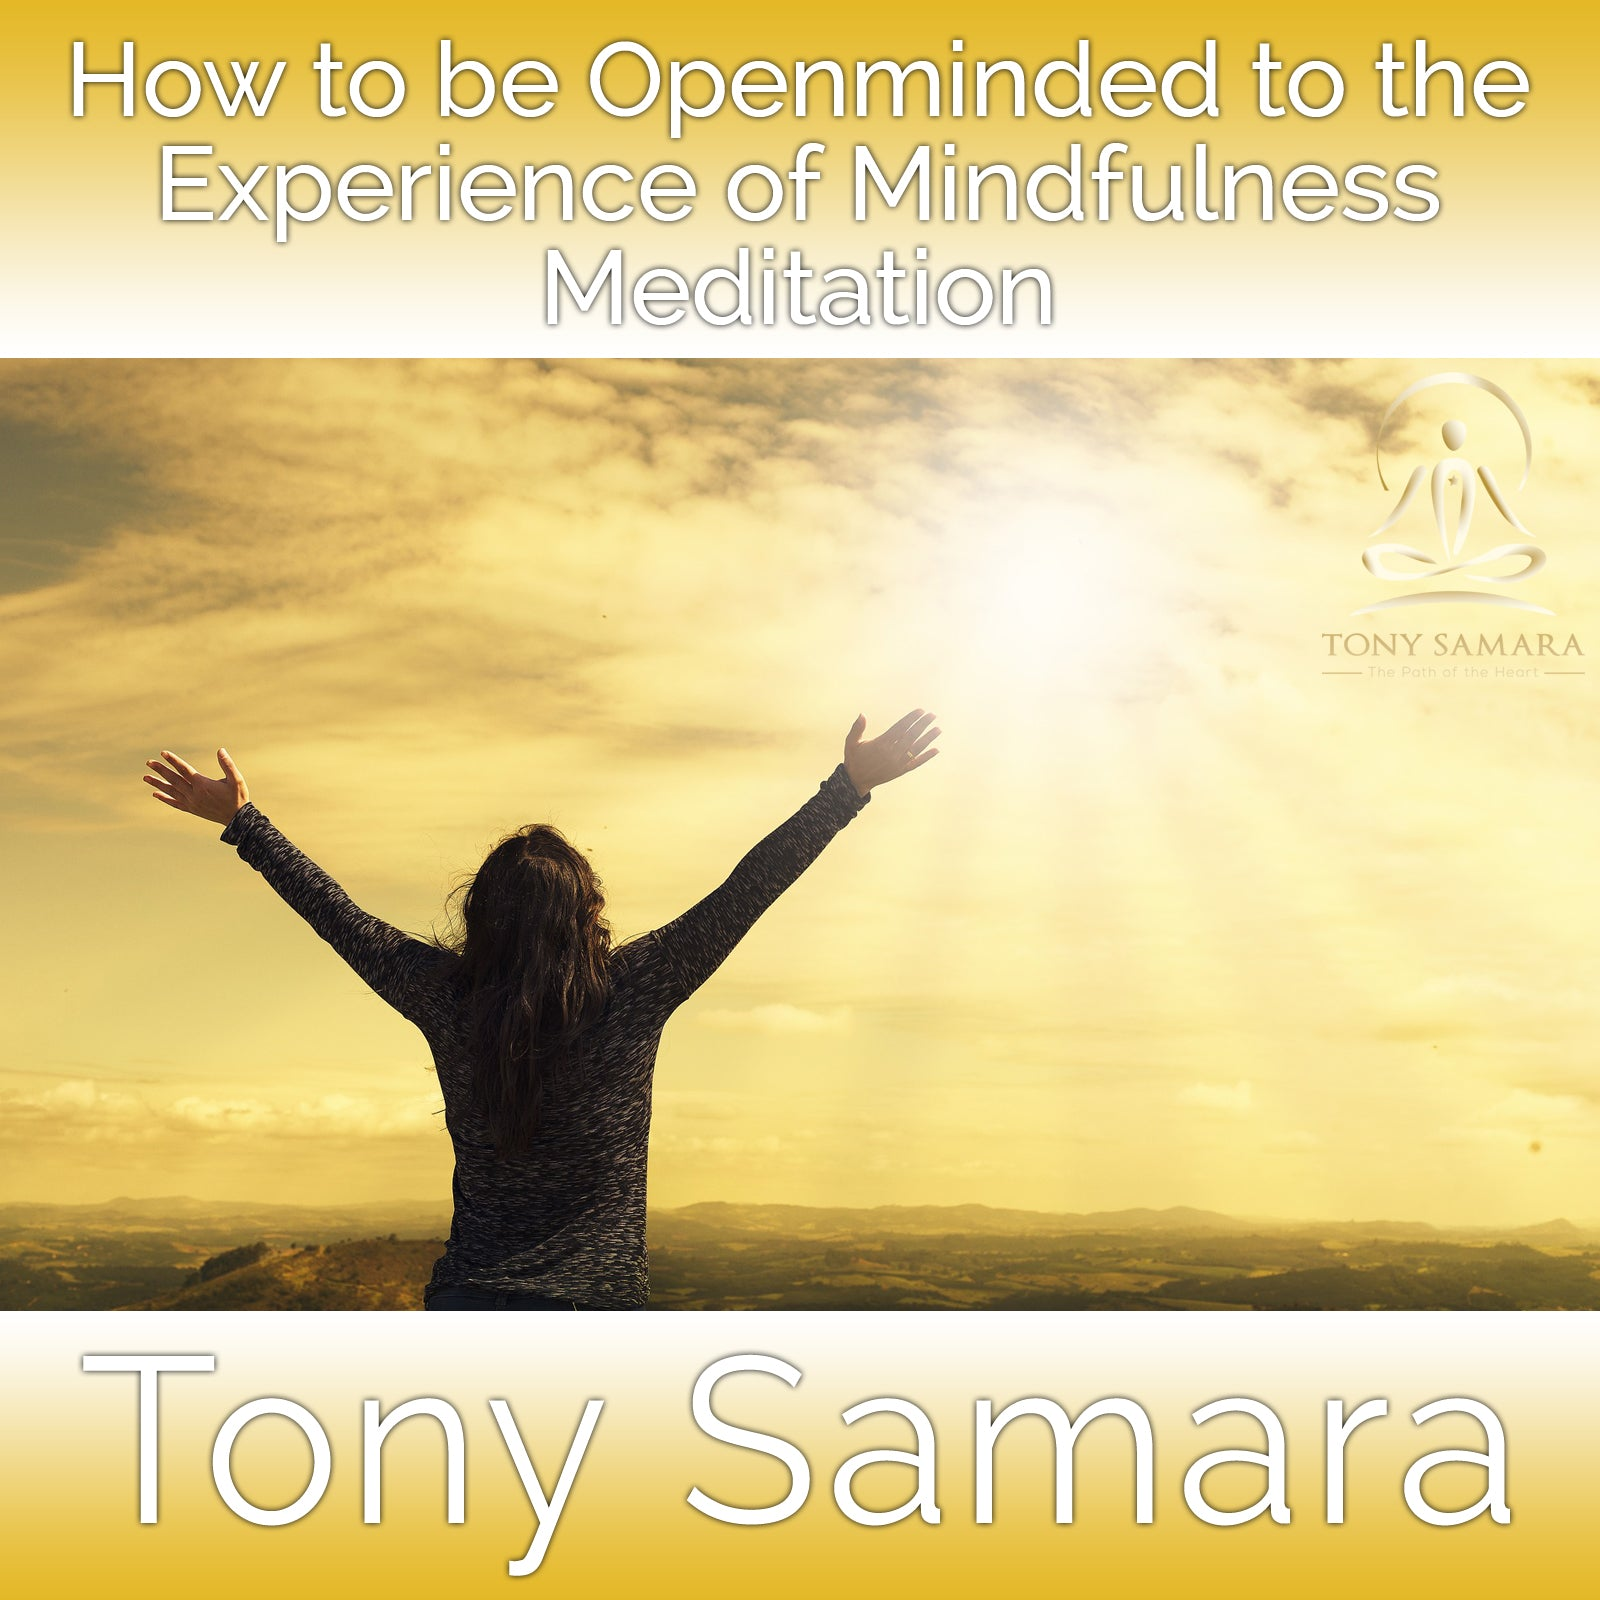 How to be Openminded to the Experience of Mindfulness Meditation (MP3 Audio Download) - Tony Samara Meditation